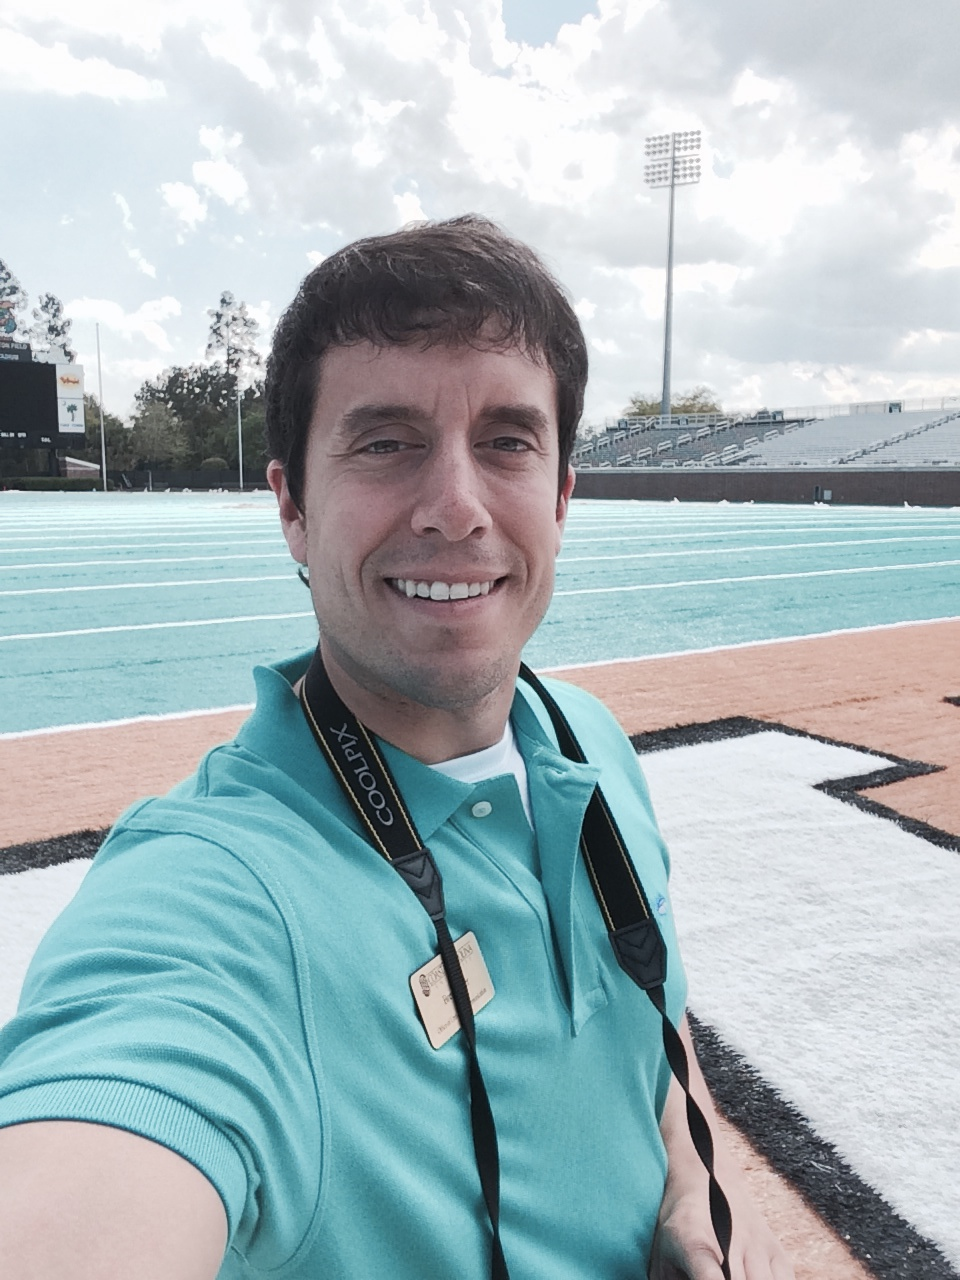 Me hanging out on the turf. I love how it looks!